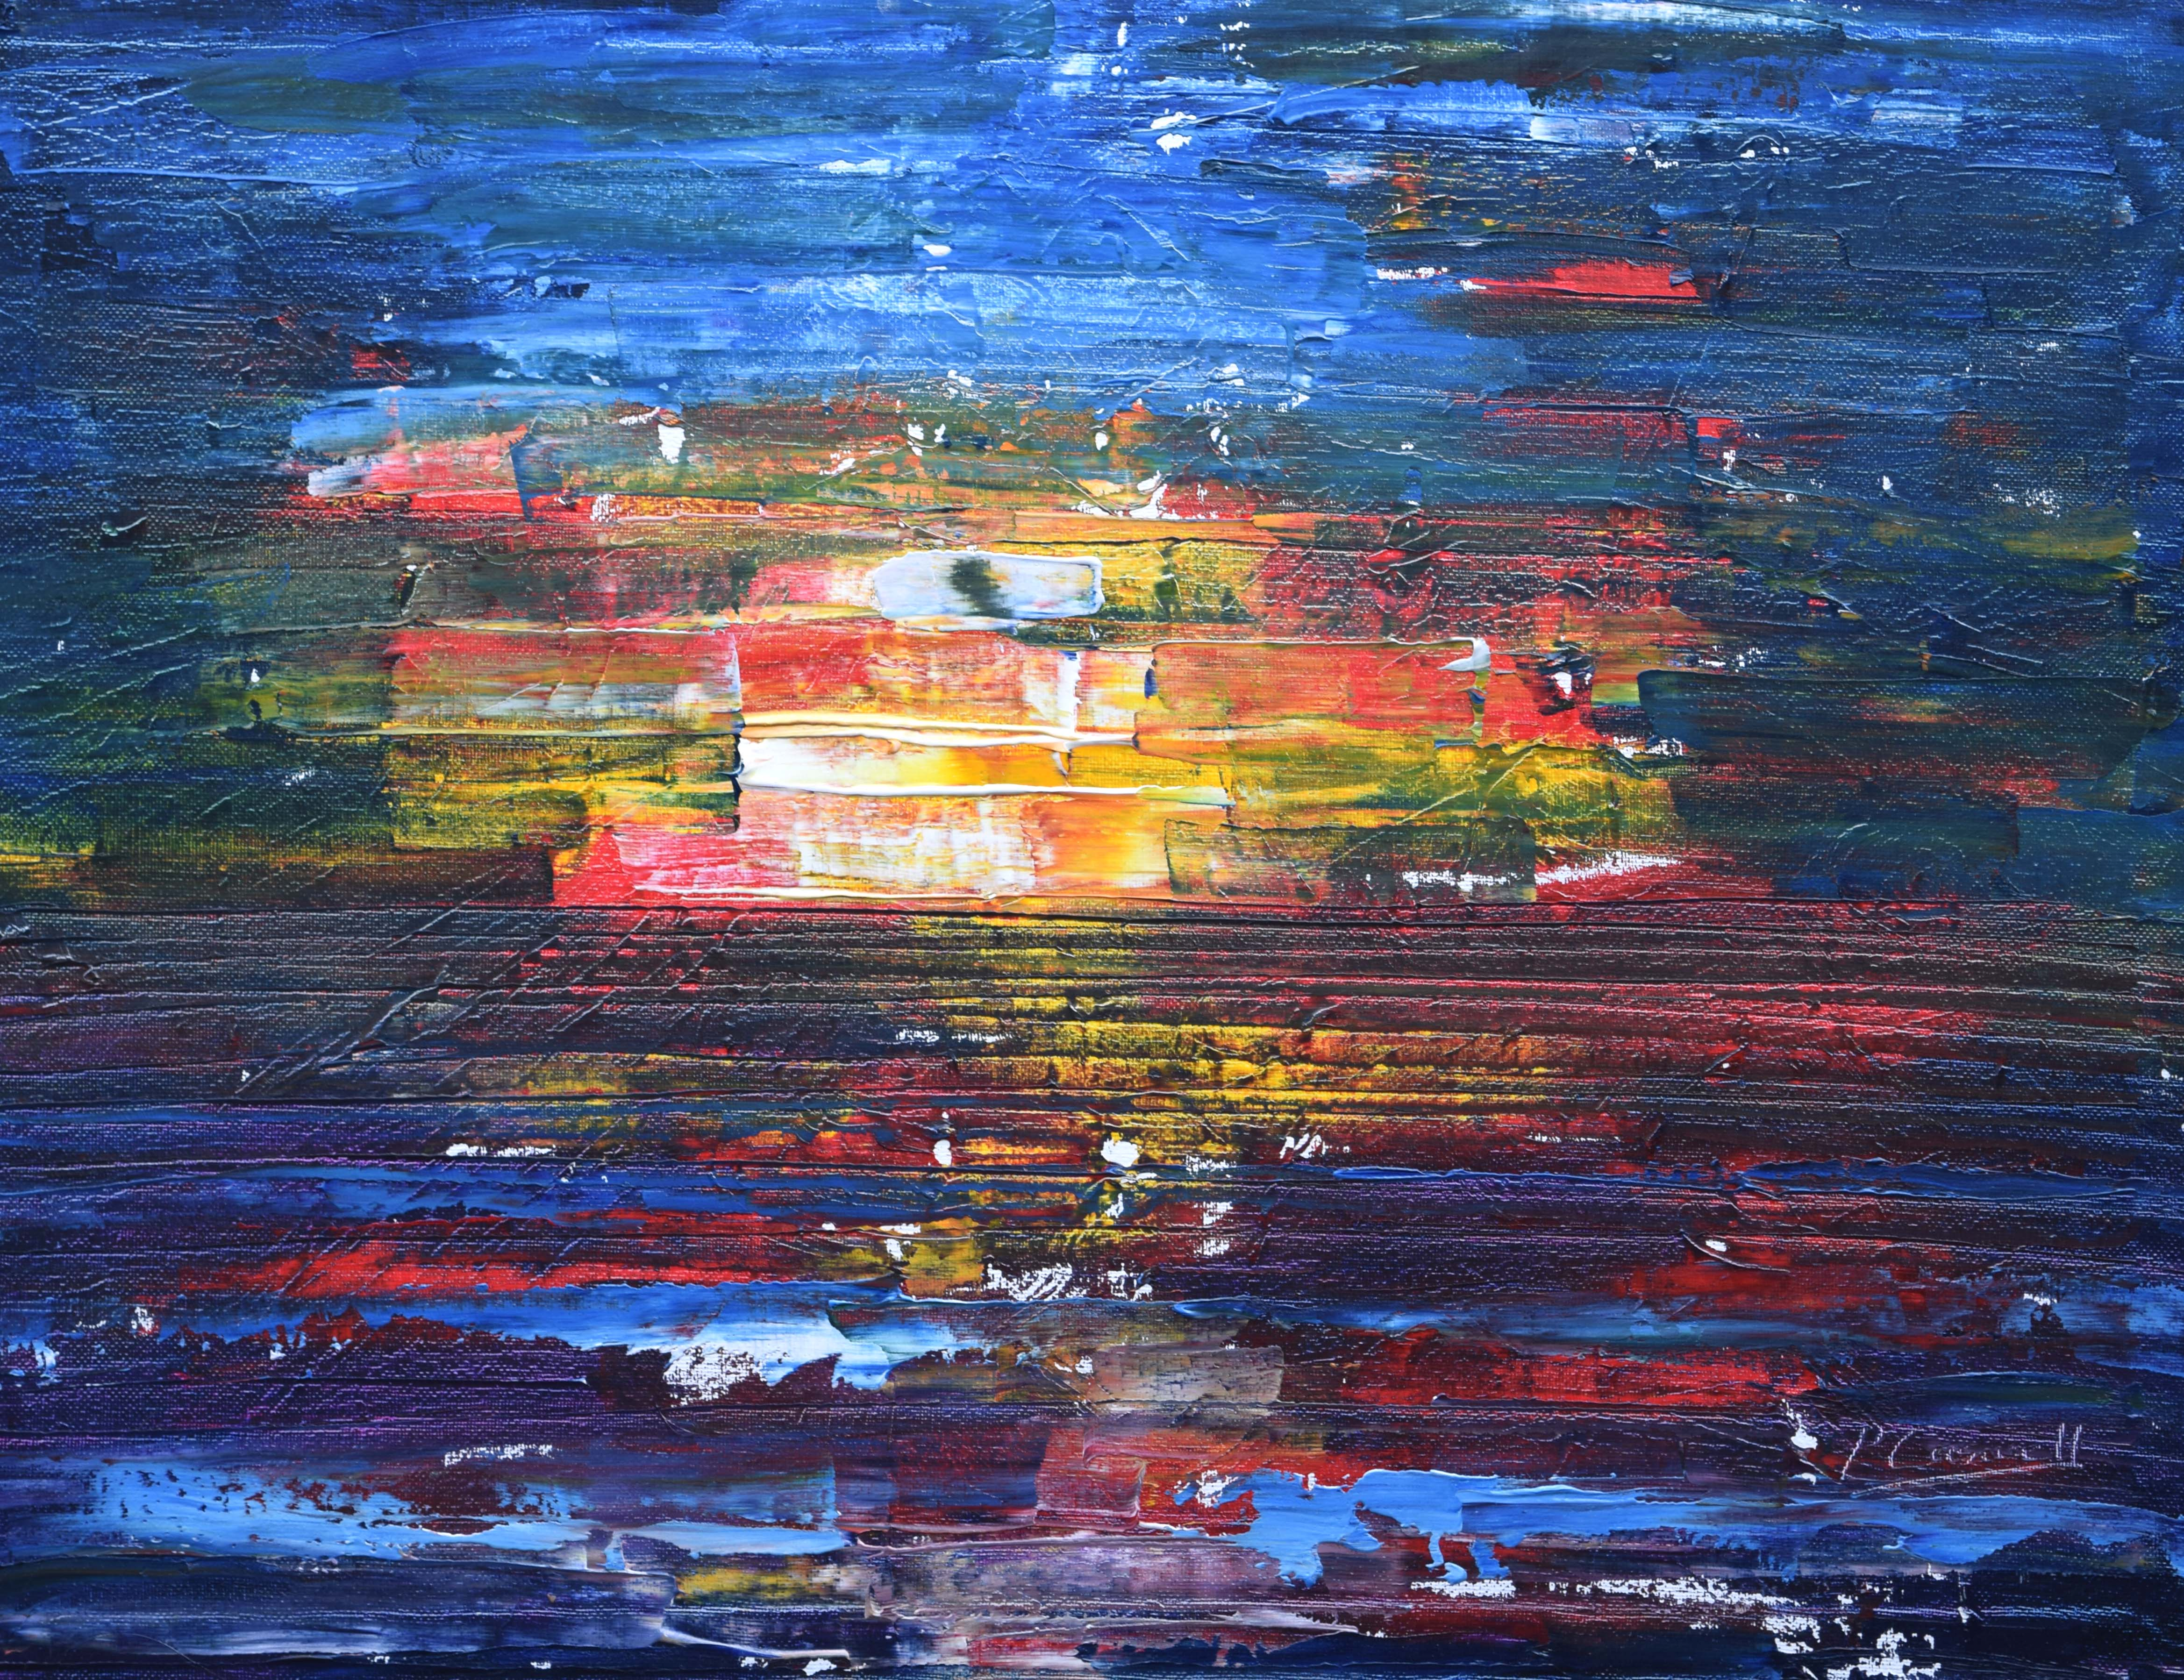 New paintings for sale pete caswell for Paintings for sale online